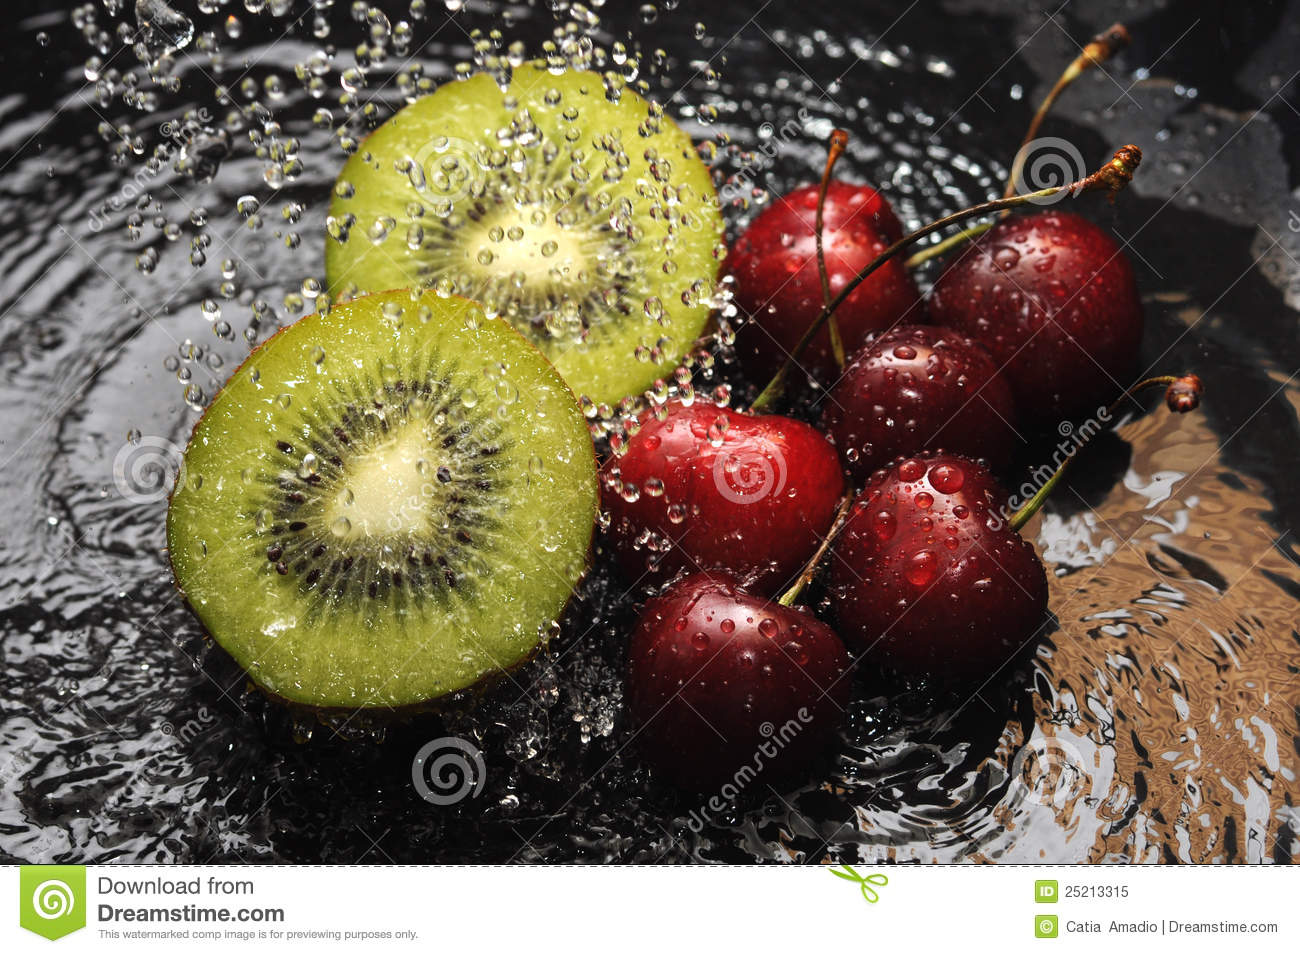 Kiwi and cherries in water